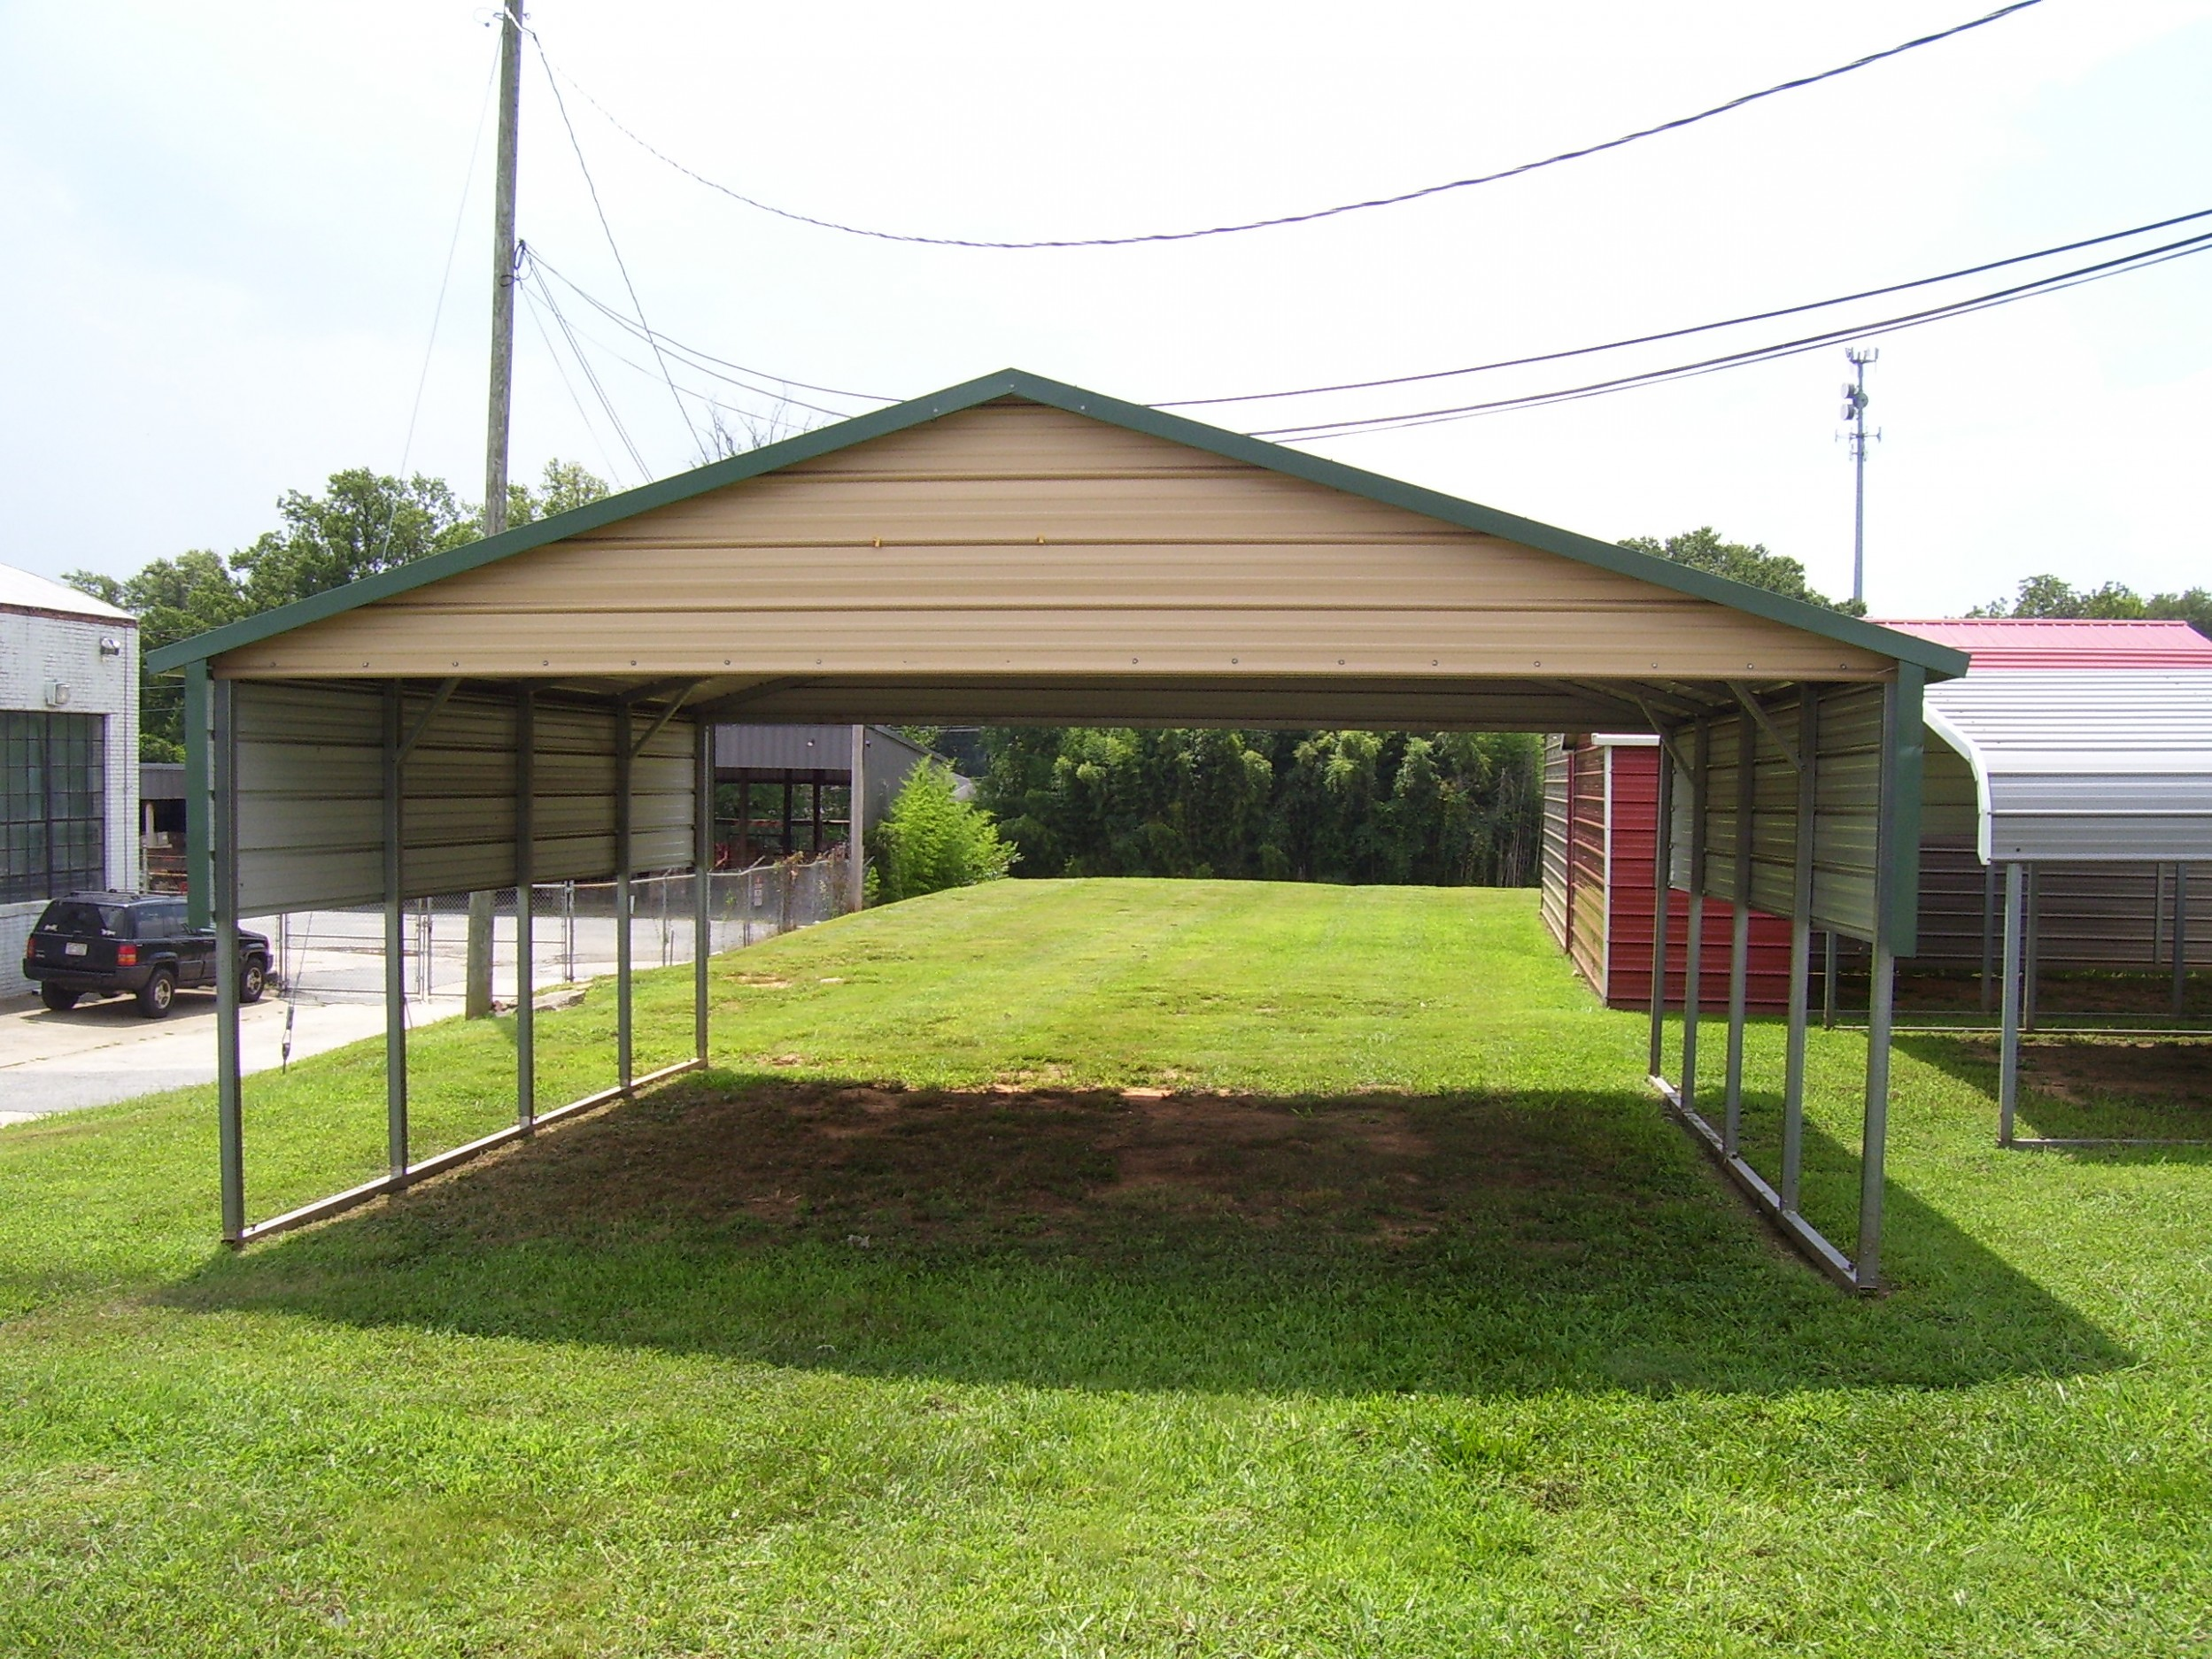 11 Lessons I've Learned From Inexpensive Carport Kits | inexpensive carport kits